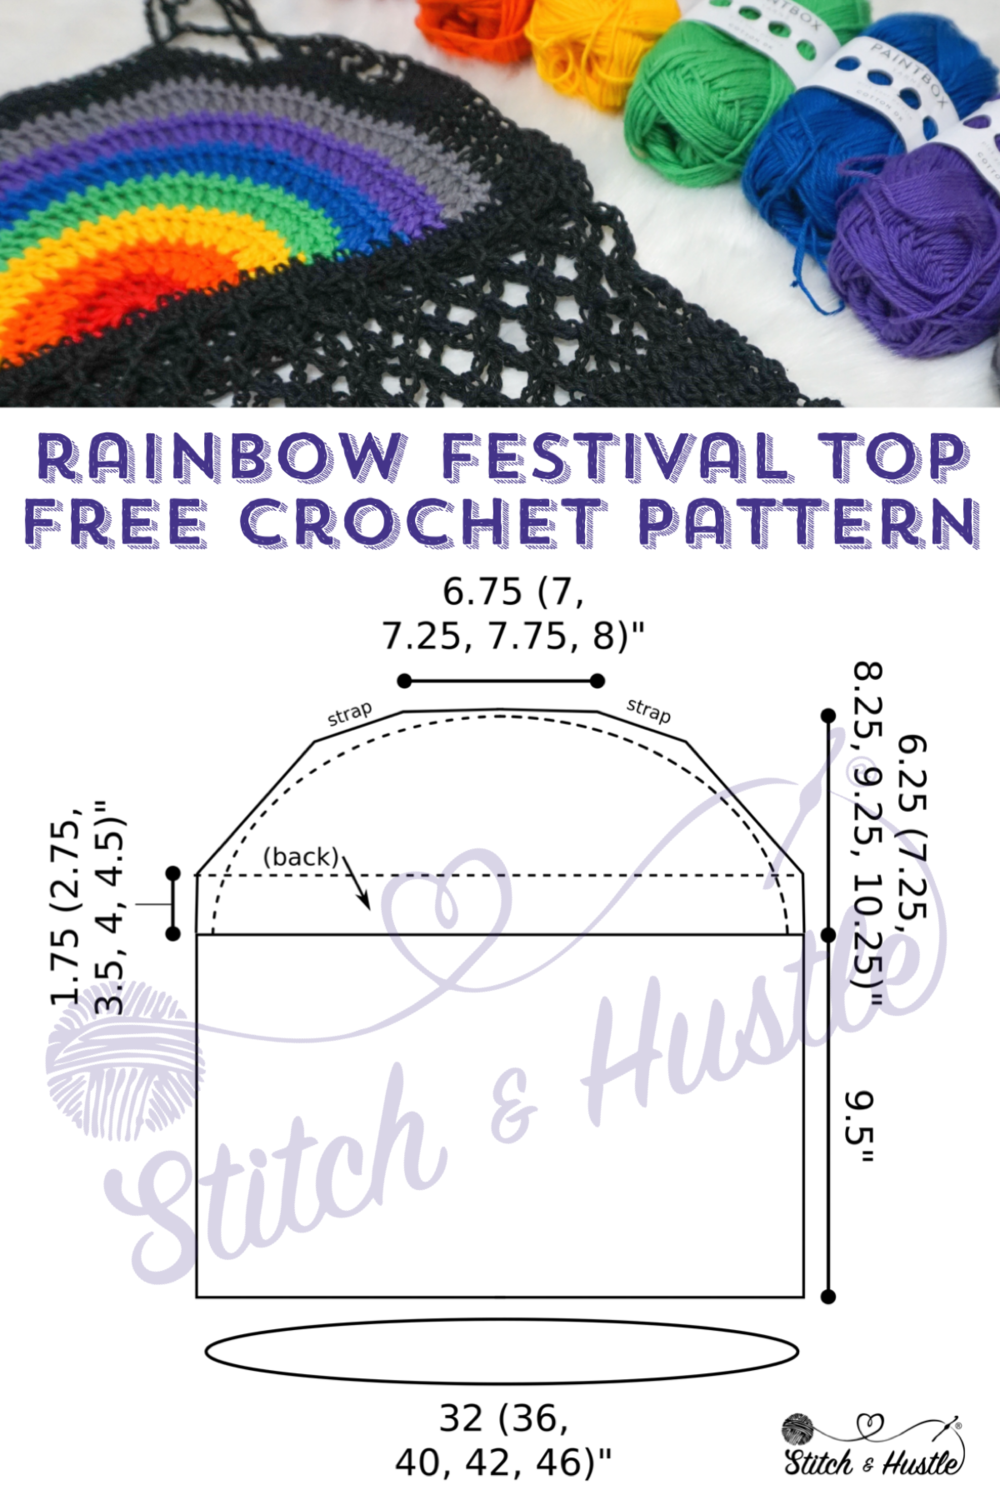 islamorada-summer-festival-crochet-top-free-pattern-stitch-and-hustle-schematic.jpeg